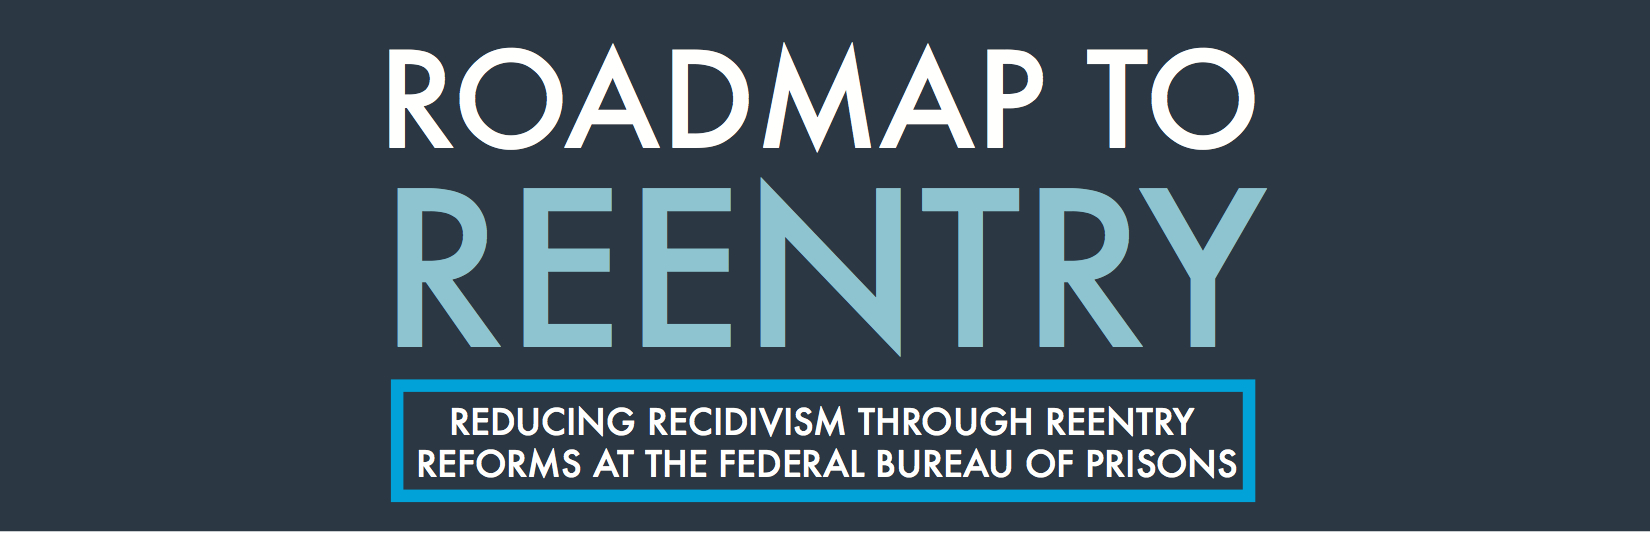 Reducing Recidivism Through Reentry Reforms at the Federal Bureau of Prisons